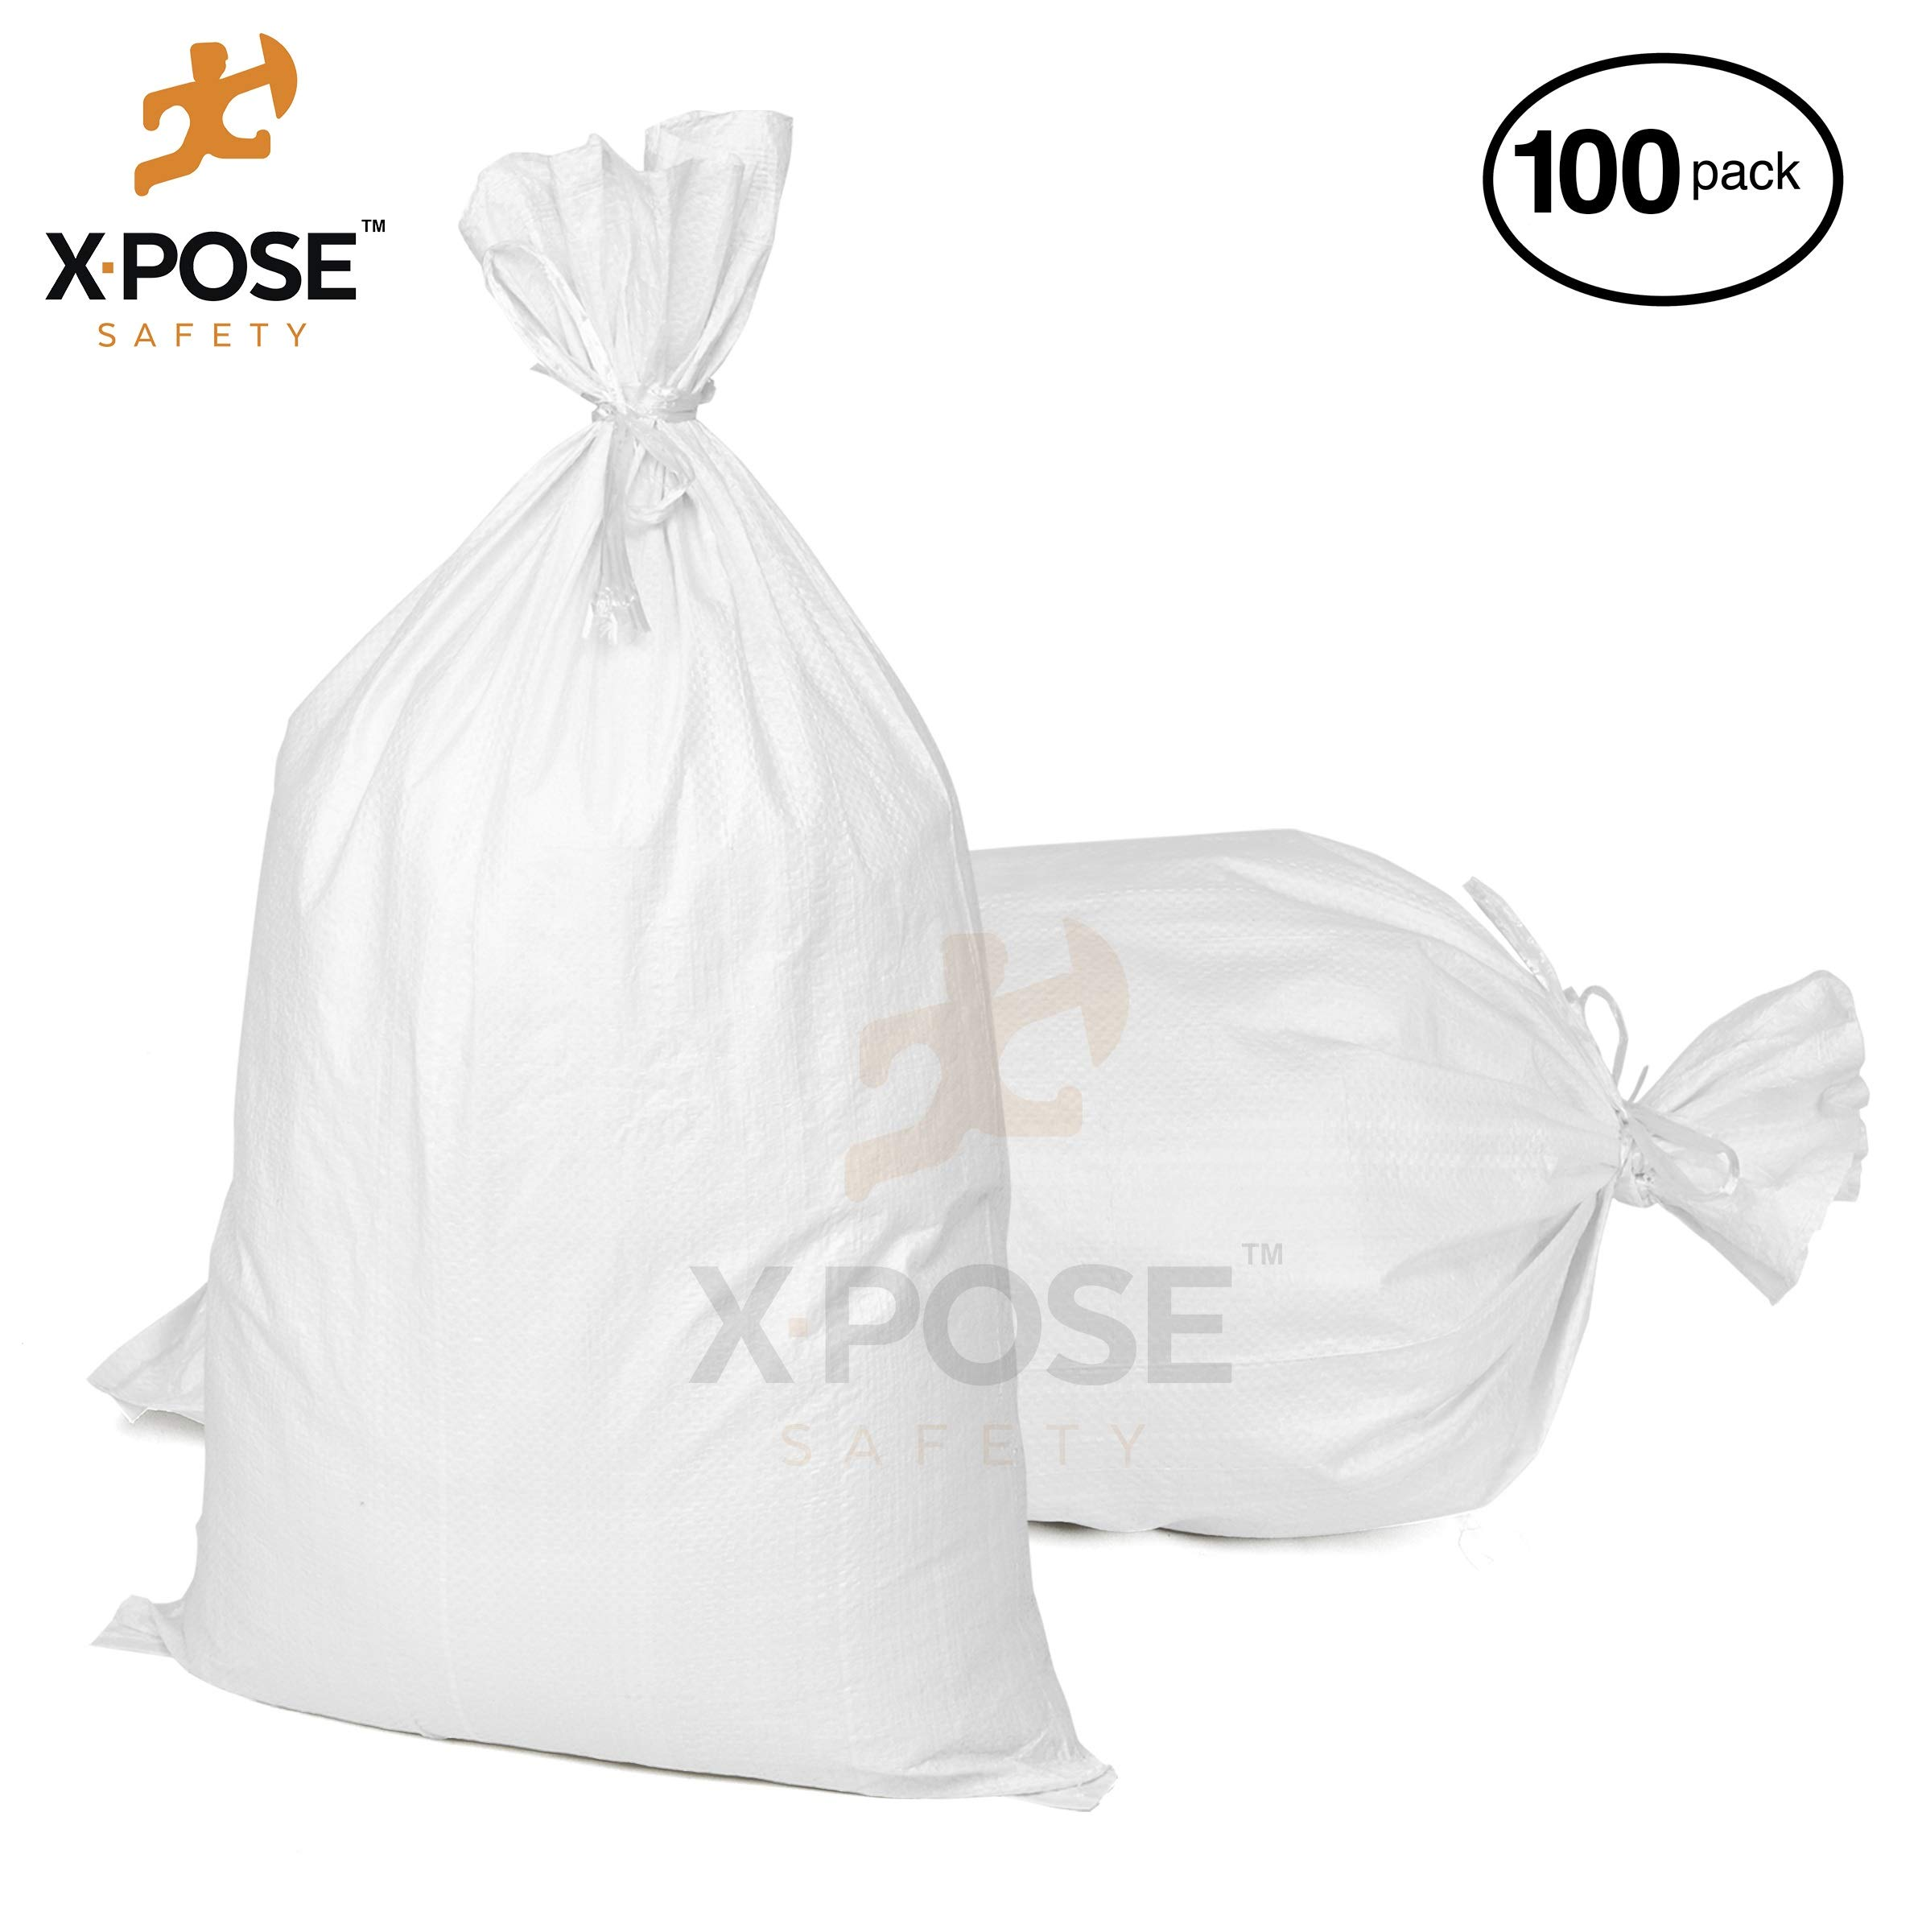 """17""""x27"""" Empty Sand Bags, 100 Pack with Ties – Heavy Duty Woven Polypropylene, UV Sun Protection, Dust, Water and Oil Resistant - Home and Industrial - Floods, Photography and More - by Xpose Safety"""